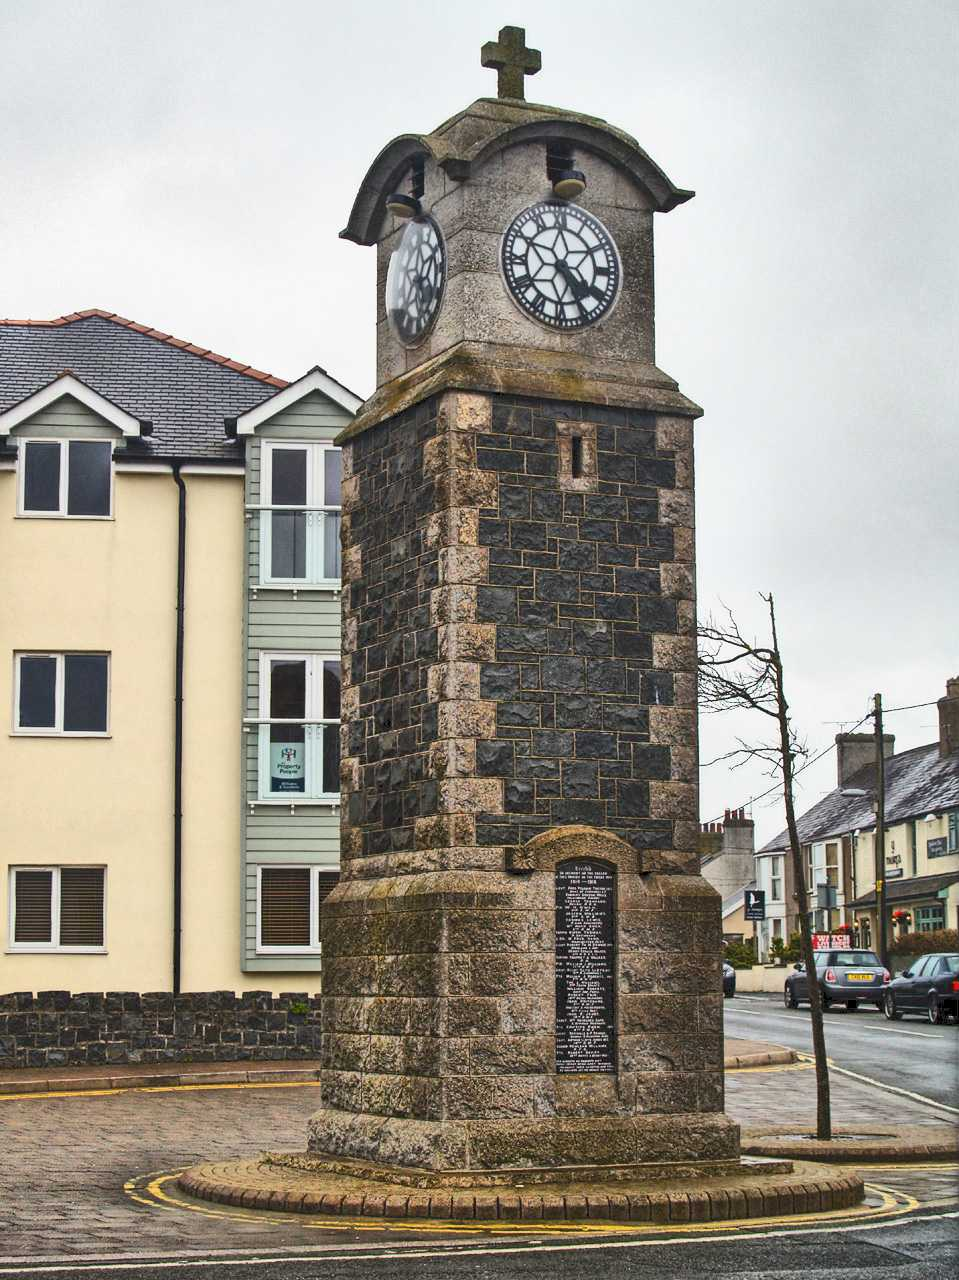 Anglesey, Rhosneigr War Memorial Clock Tower in hdr